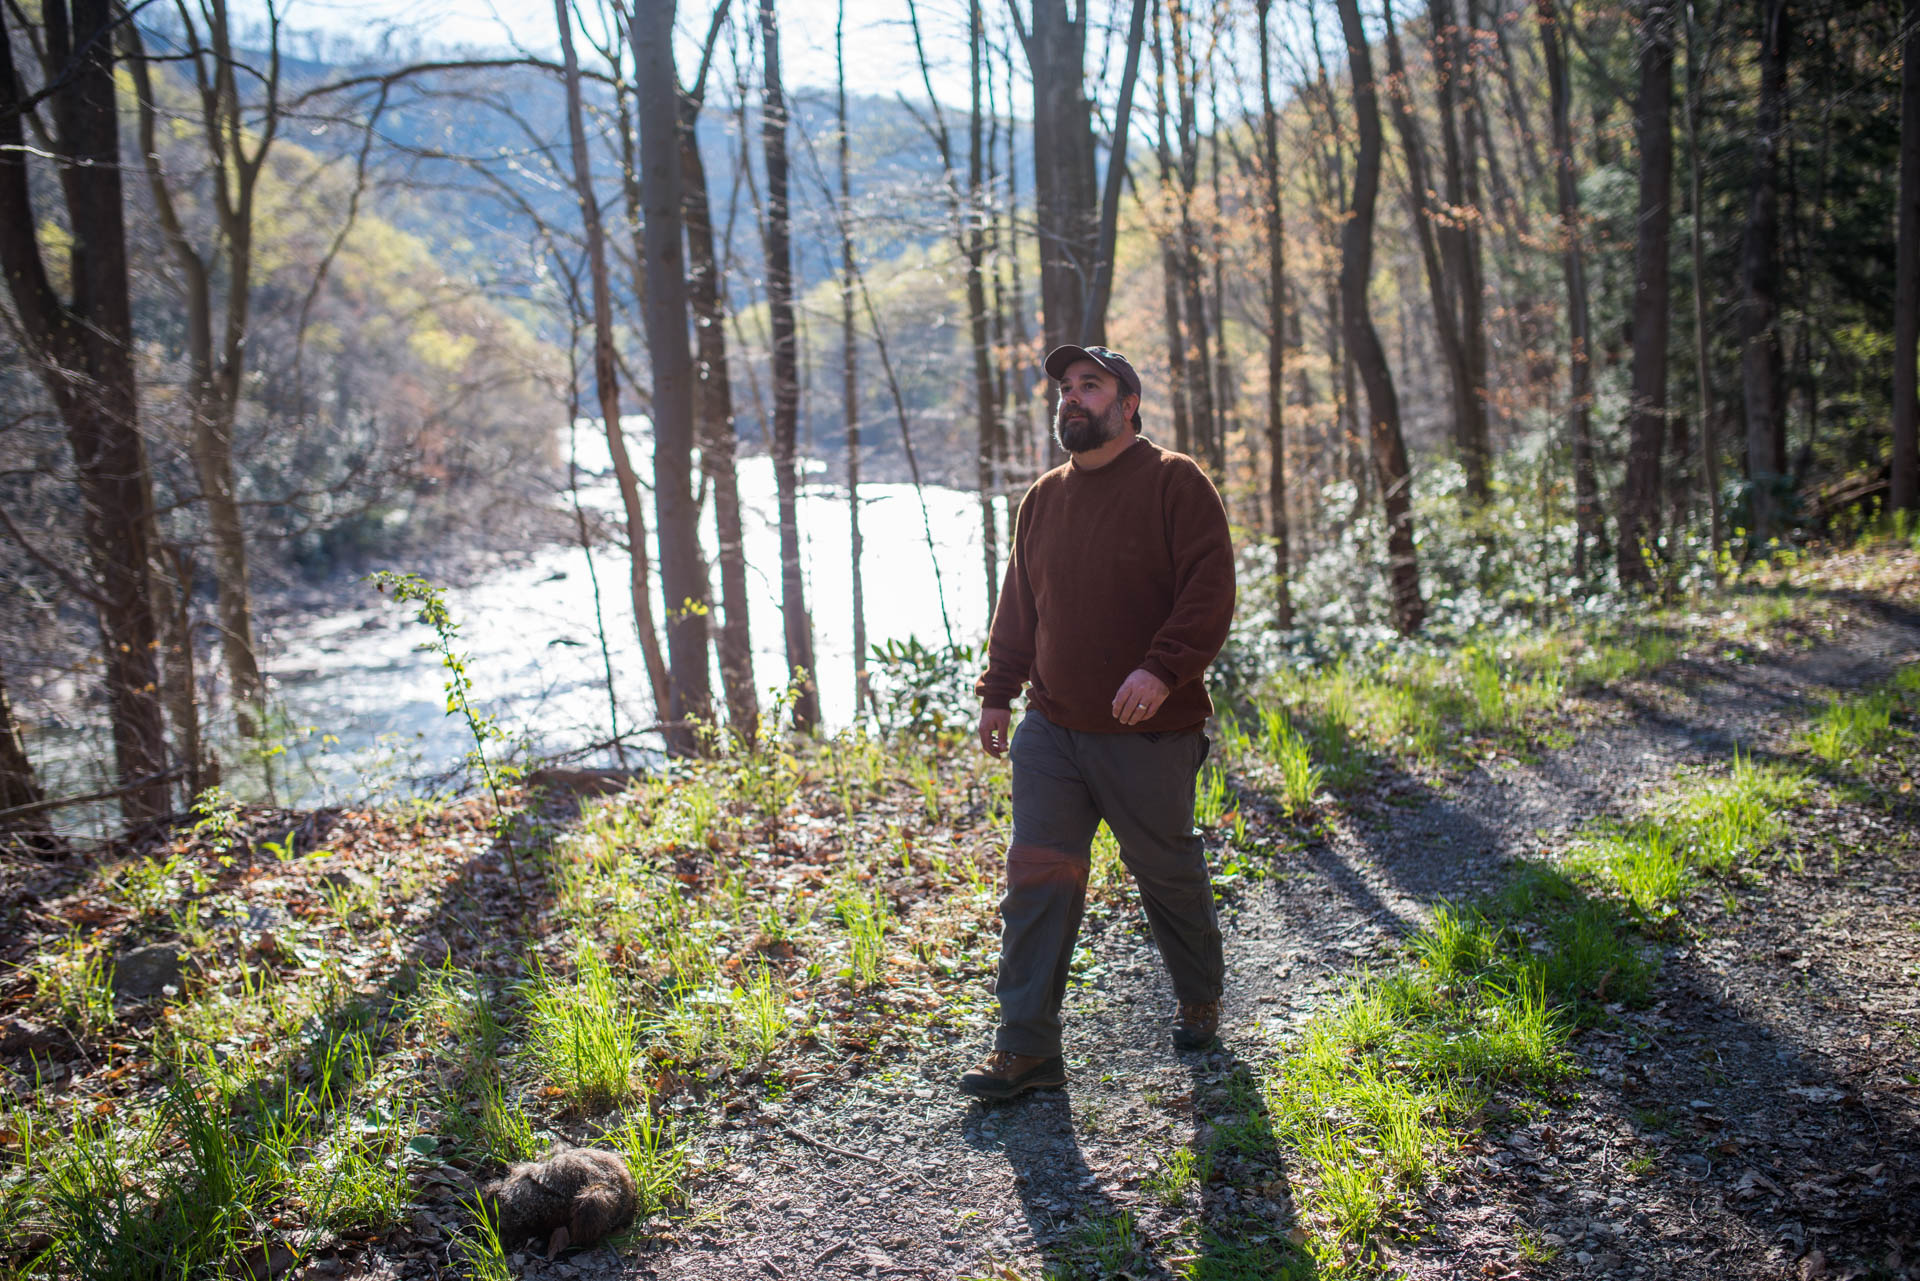 Allegheny Trail, Cheat River, Friends of the Cheat, Gabe DeWitt, TNC, The Nature Conservancy, The Nature Conservancy Magazine, West Virginia, photo by Gabe DeWitt, spring